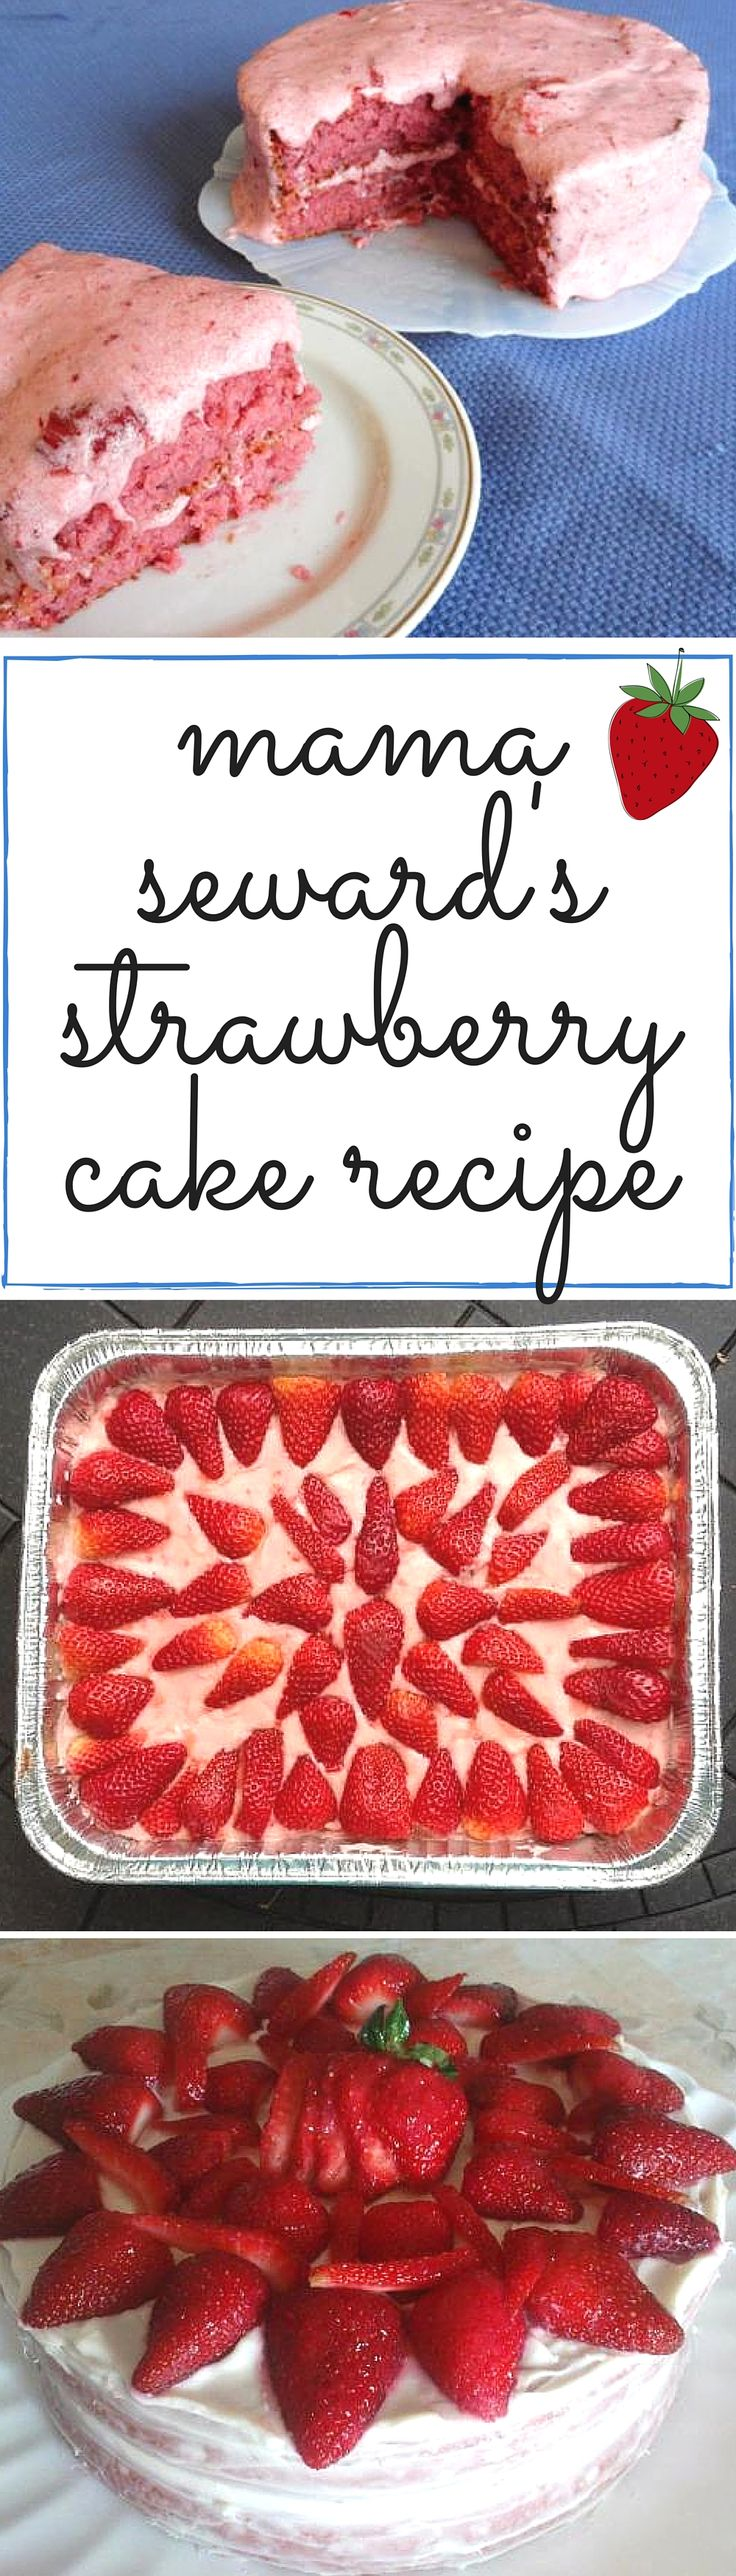 """""""This has go to be one of the best cakes I have ever eaten. So moist and tasty and easy to make."""""""